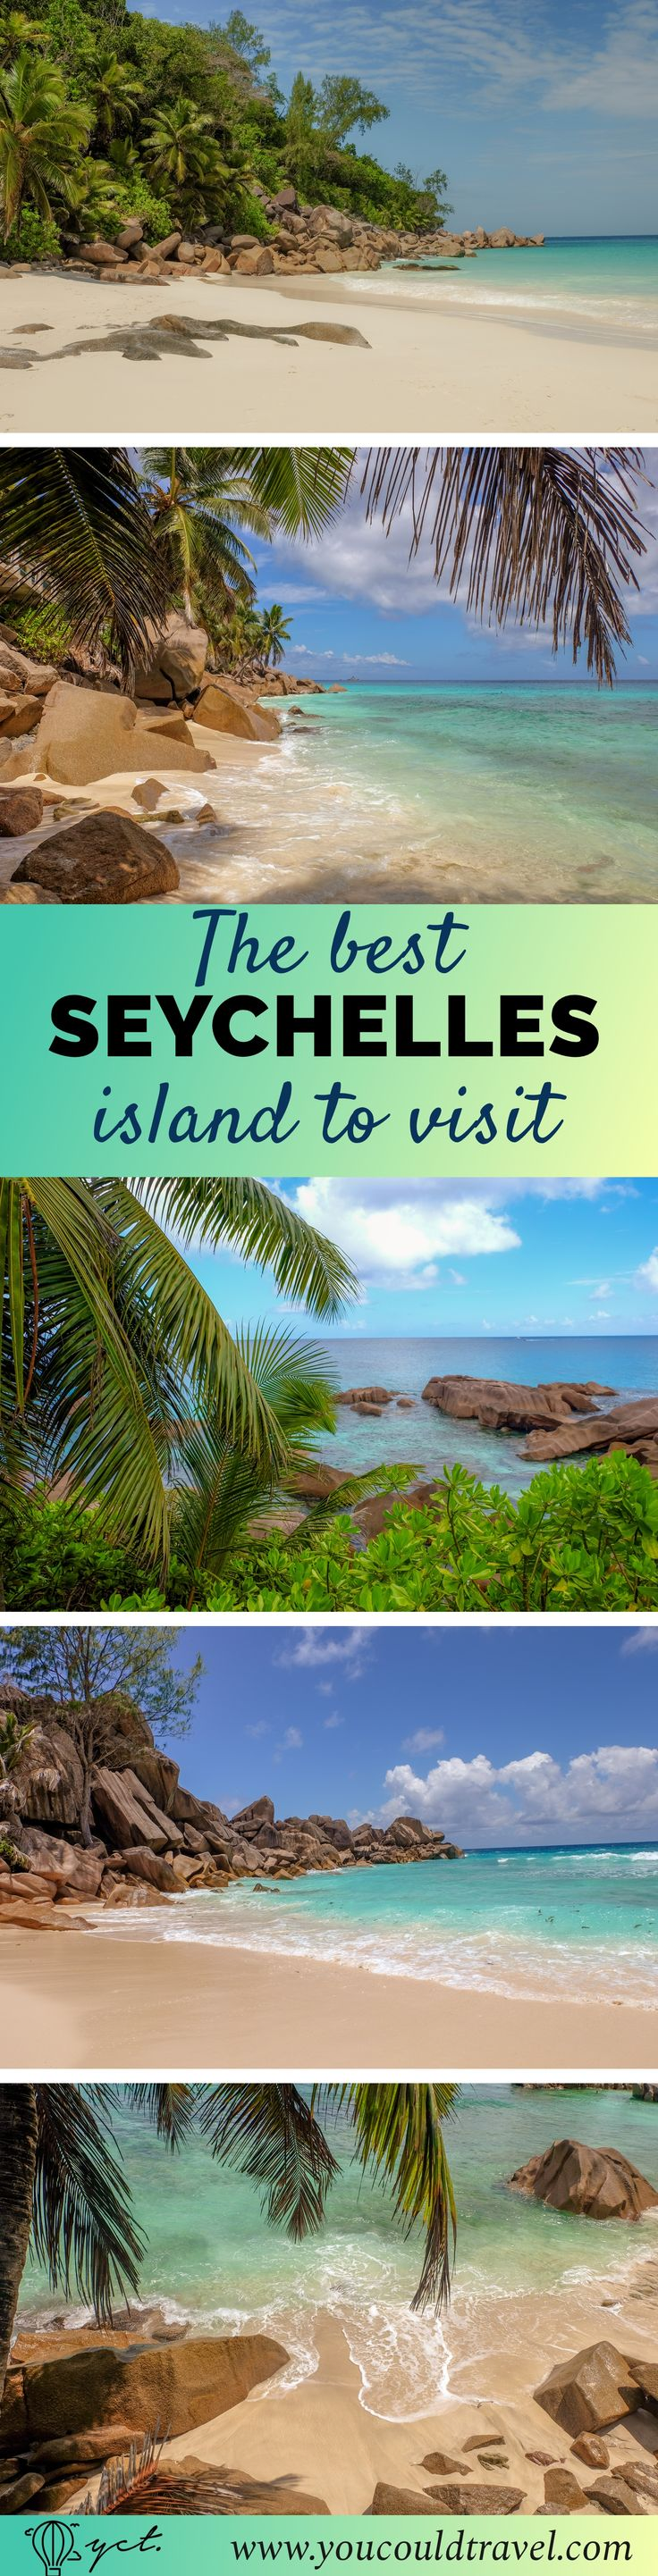 Beautiful Seychelles island. A guide helping you find the best island for your needs.